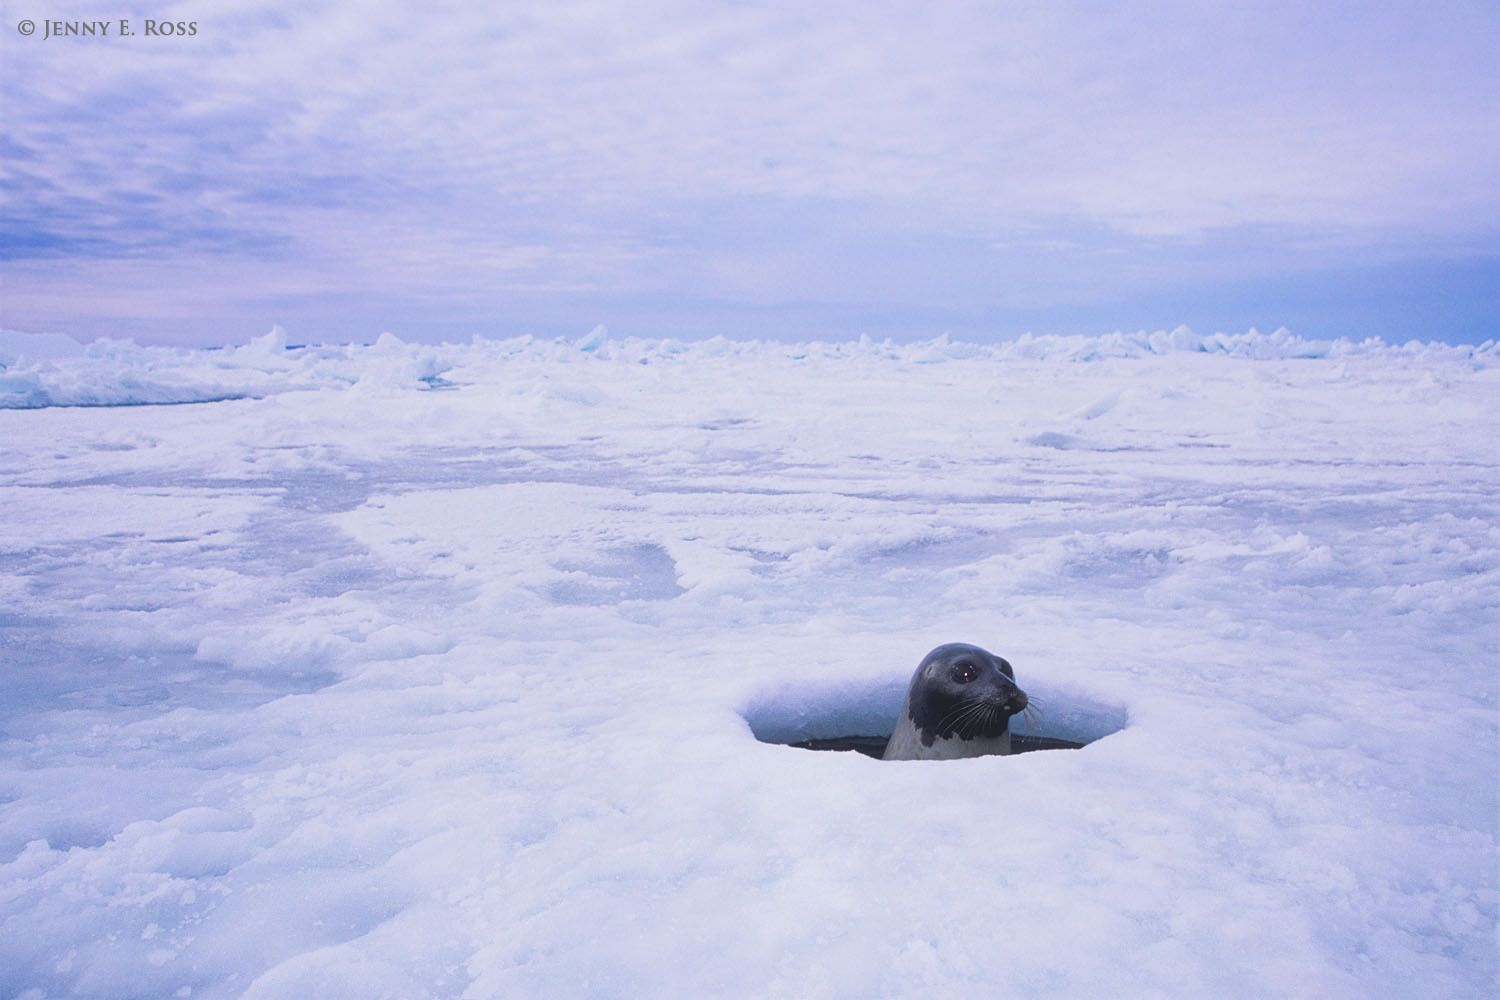 An adult female Harp Seal (Pagophilus groenlandicus) surfaces in a breathing hole she has maintained in the floating pack ice of the Gulf of St. Lawrence, near where her young pup is resting on the ice.